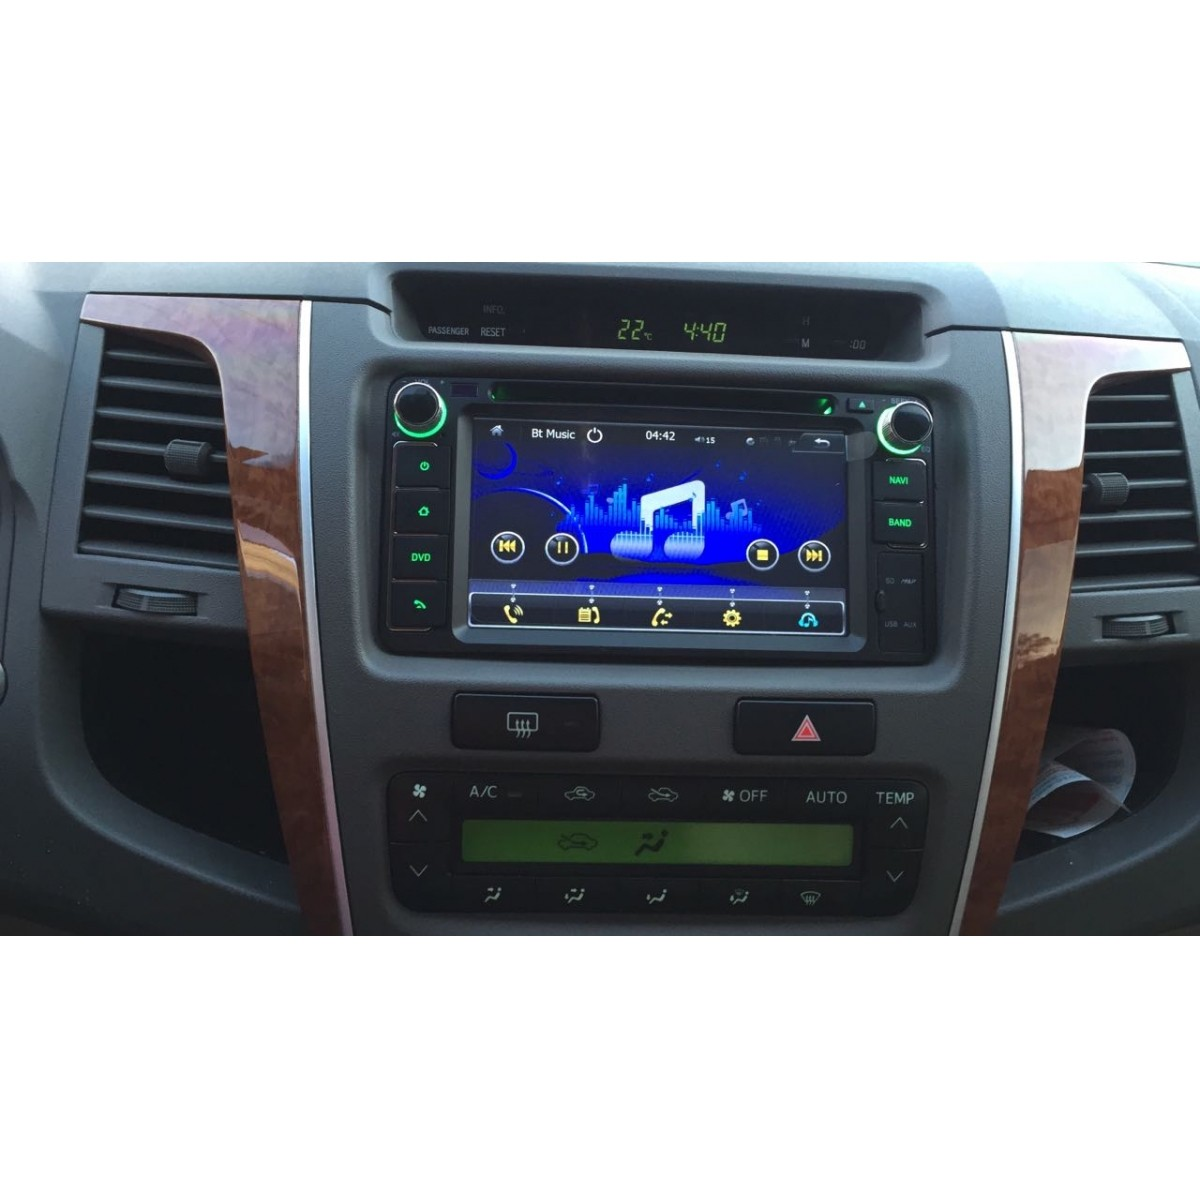 Central Multimídia Hilux Sw4 SR  2012 13 14  15 GPS Tv USB Sd BT Camera Espelhamento  - MARGI PARTS